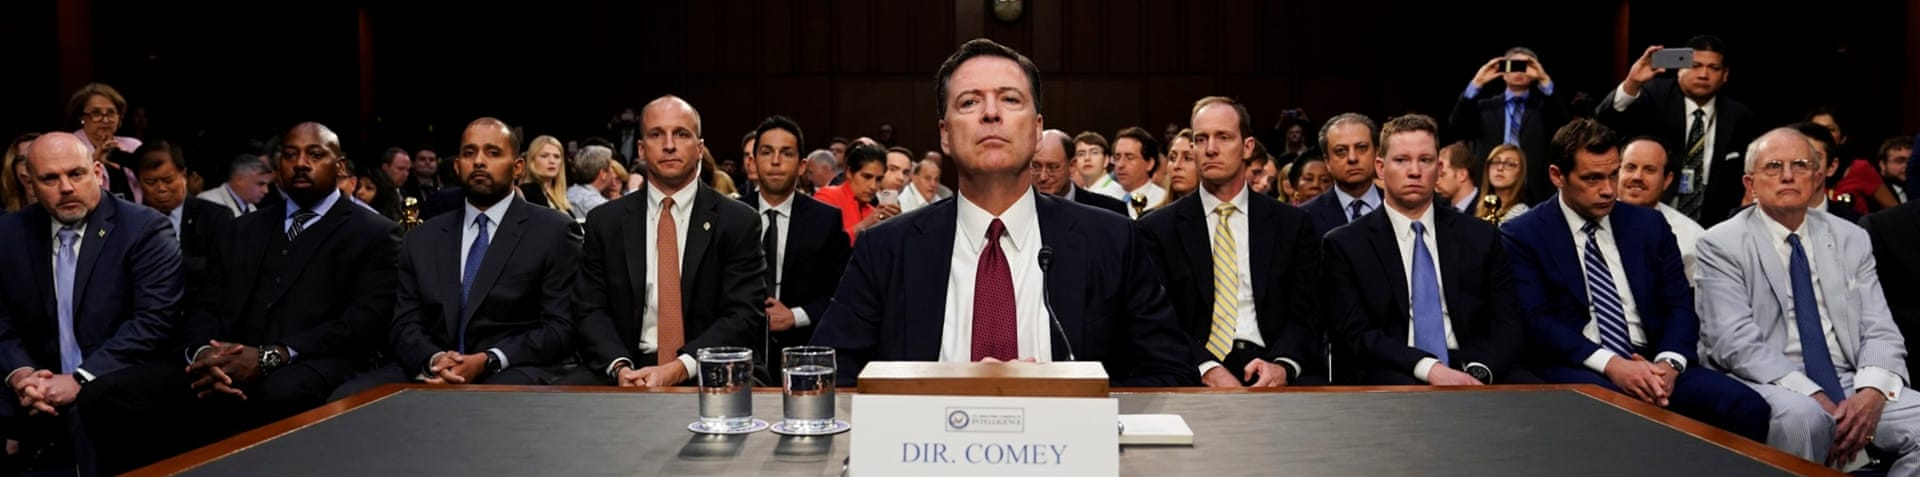 James Comey testifies on Russia's alleged interference in the 2016 US presidential election [Jonathan Ernst/Reuters]